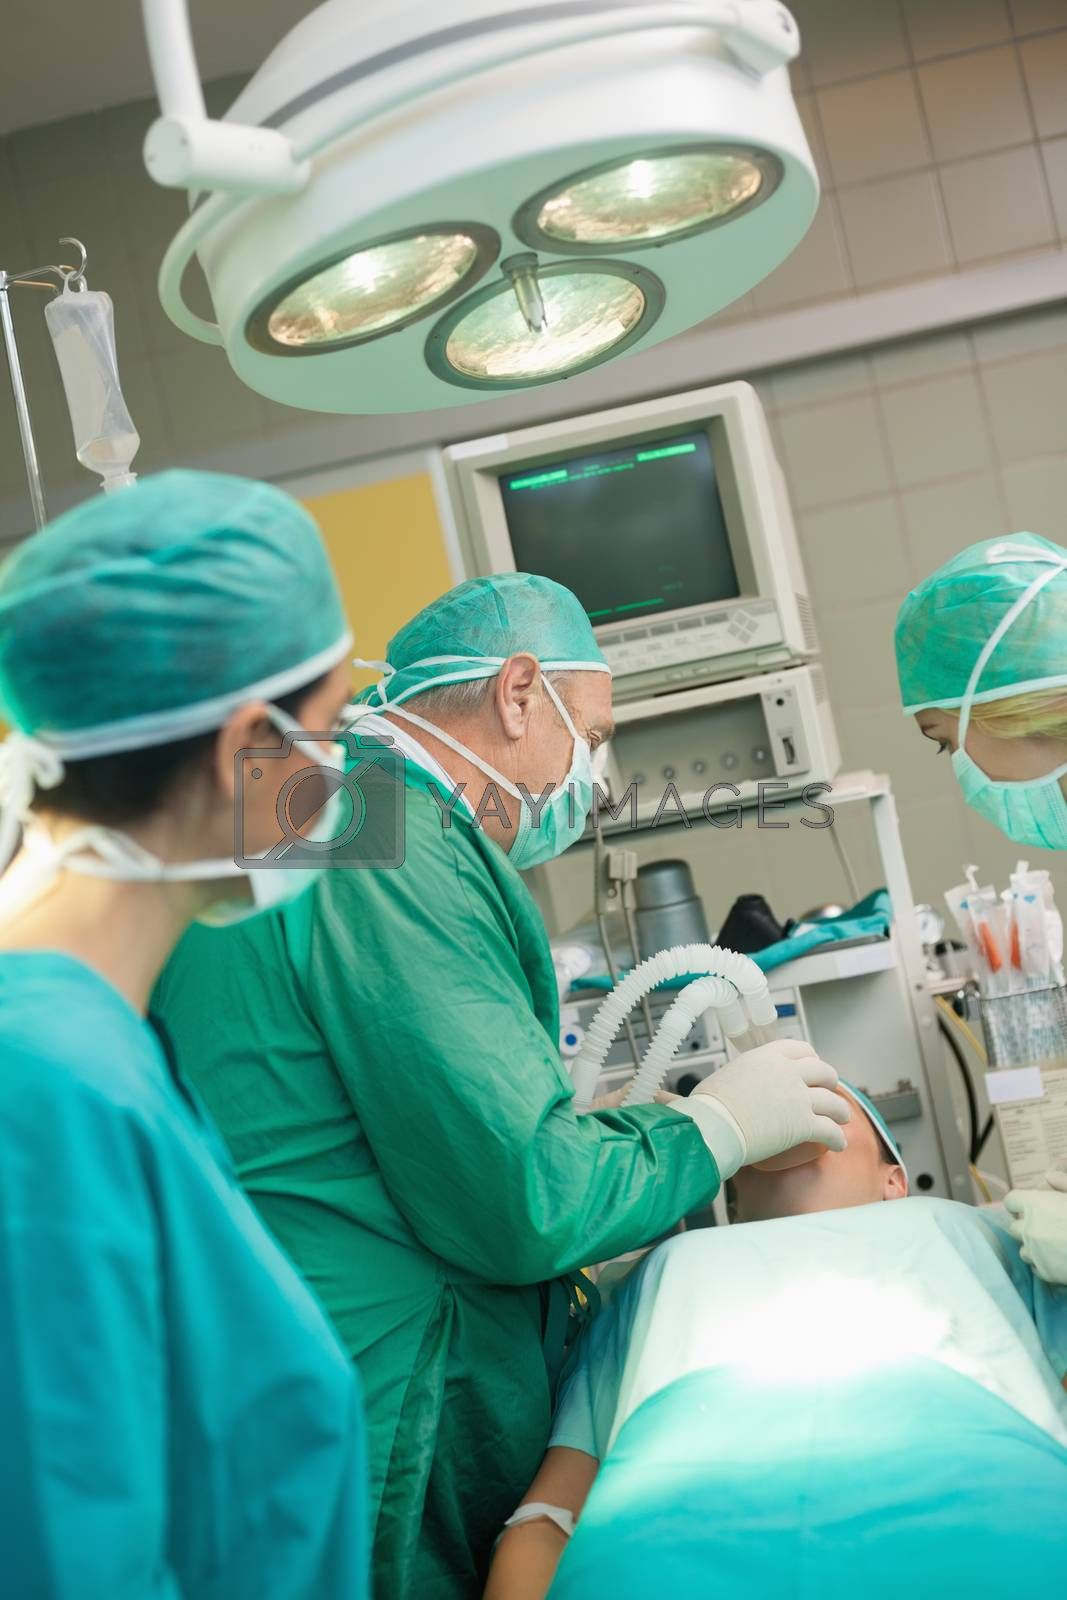 Medical team operating in a surgical room